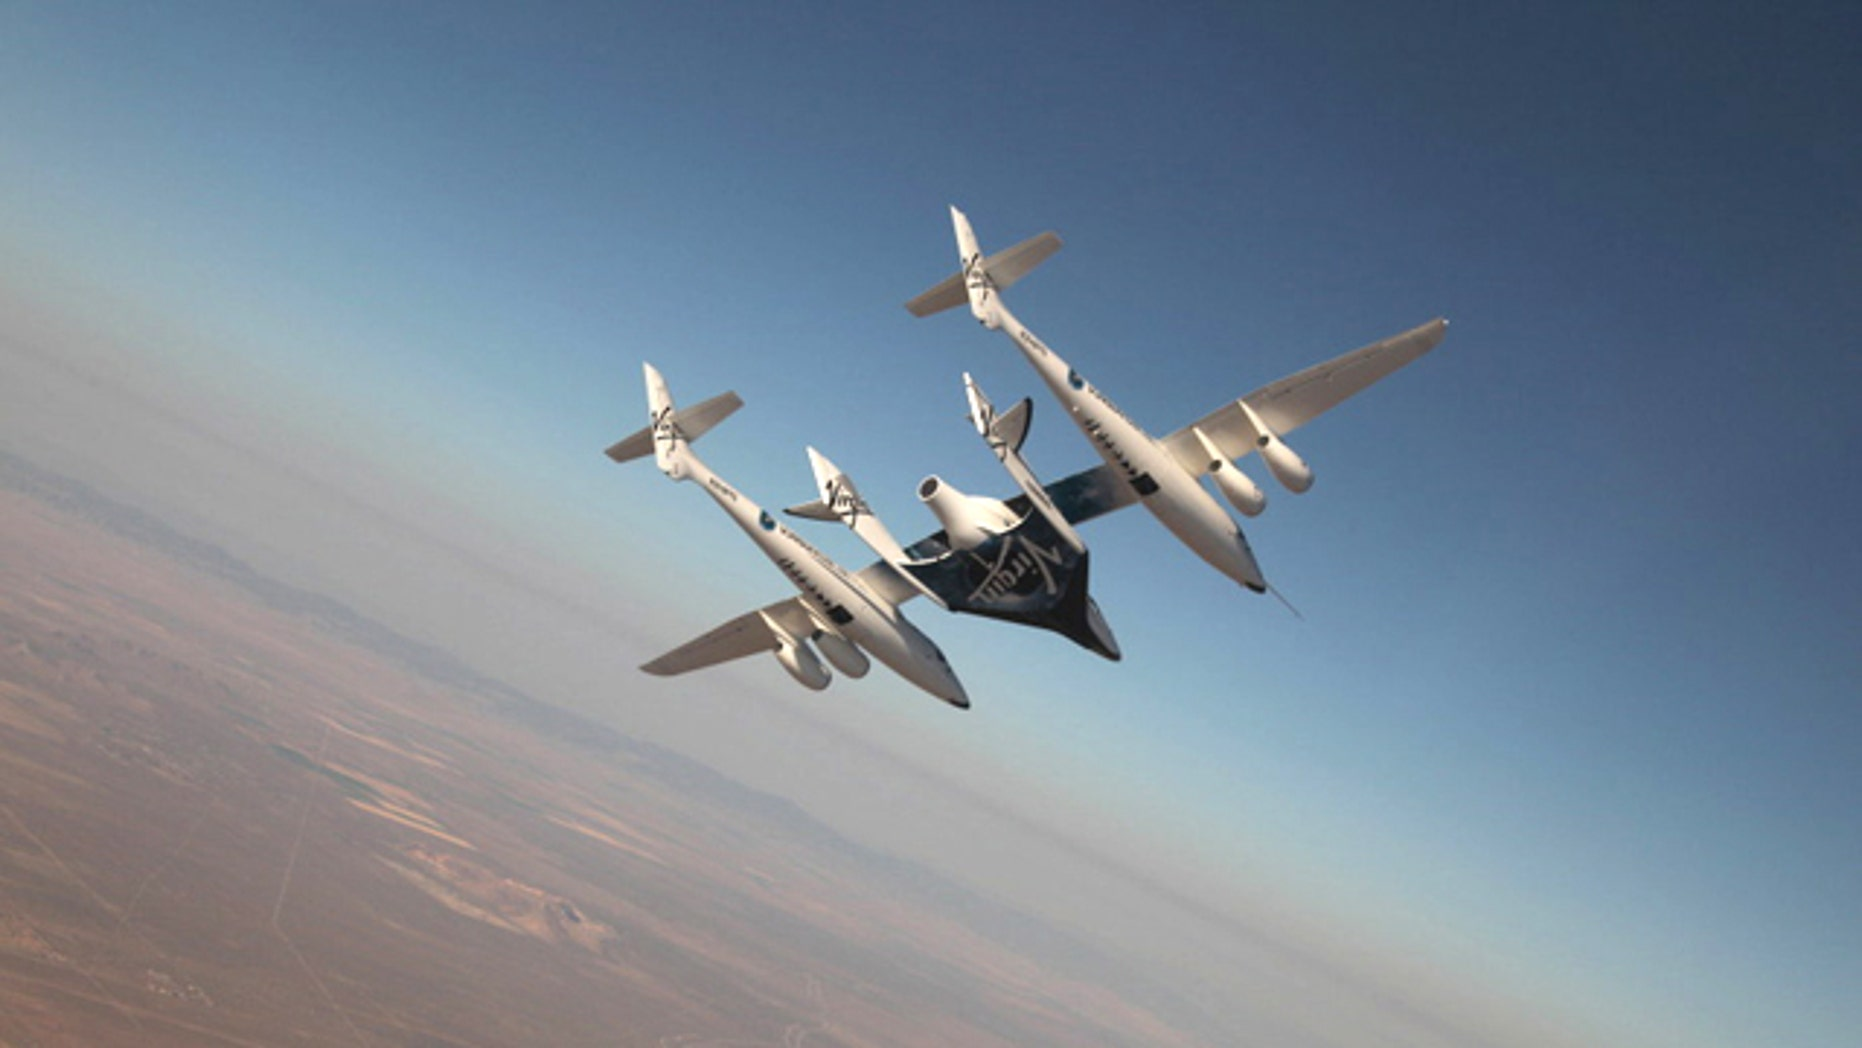 The Virgin Galactic suborbital spaceliner SpaceShipTwo makes its first crewed flight on July 15, 2010 over the Mojave Desert in California, one of a series of test flights before the first free flight of the passenger ship for space tourism flights.